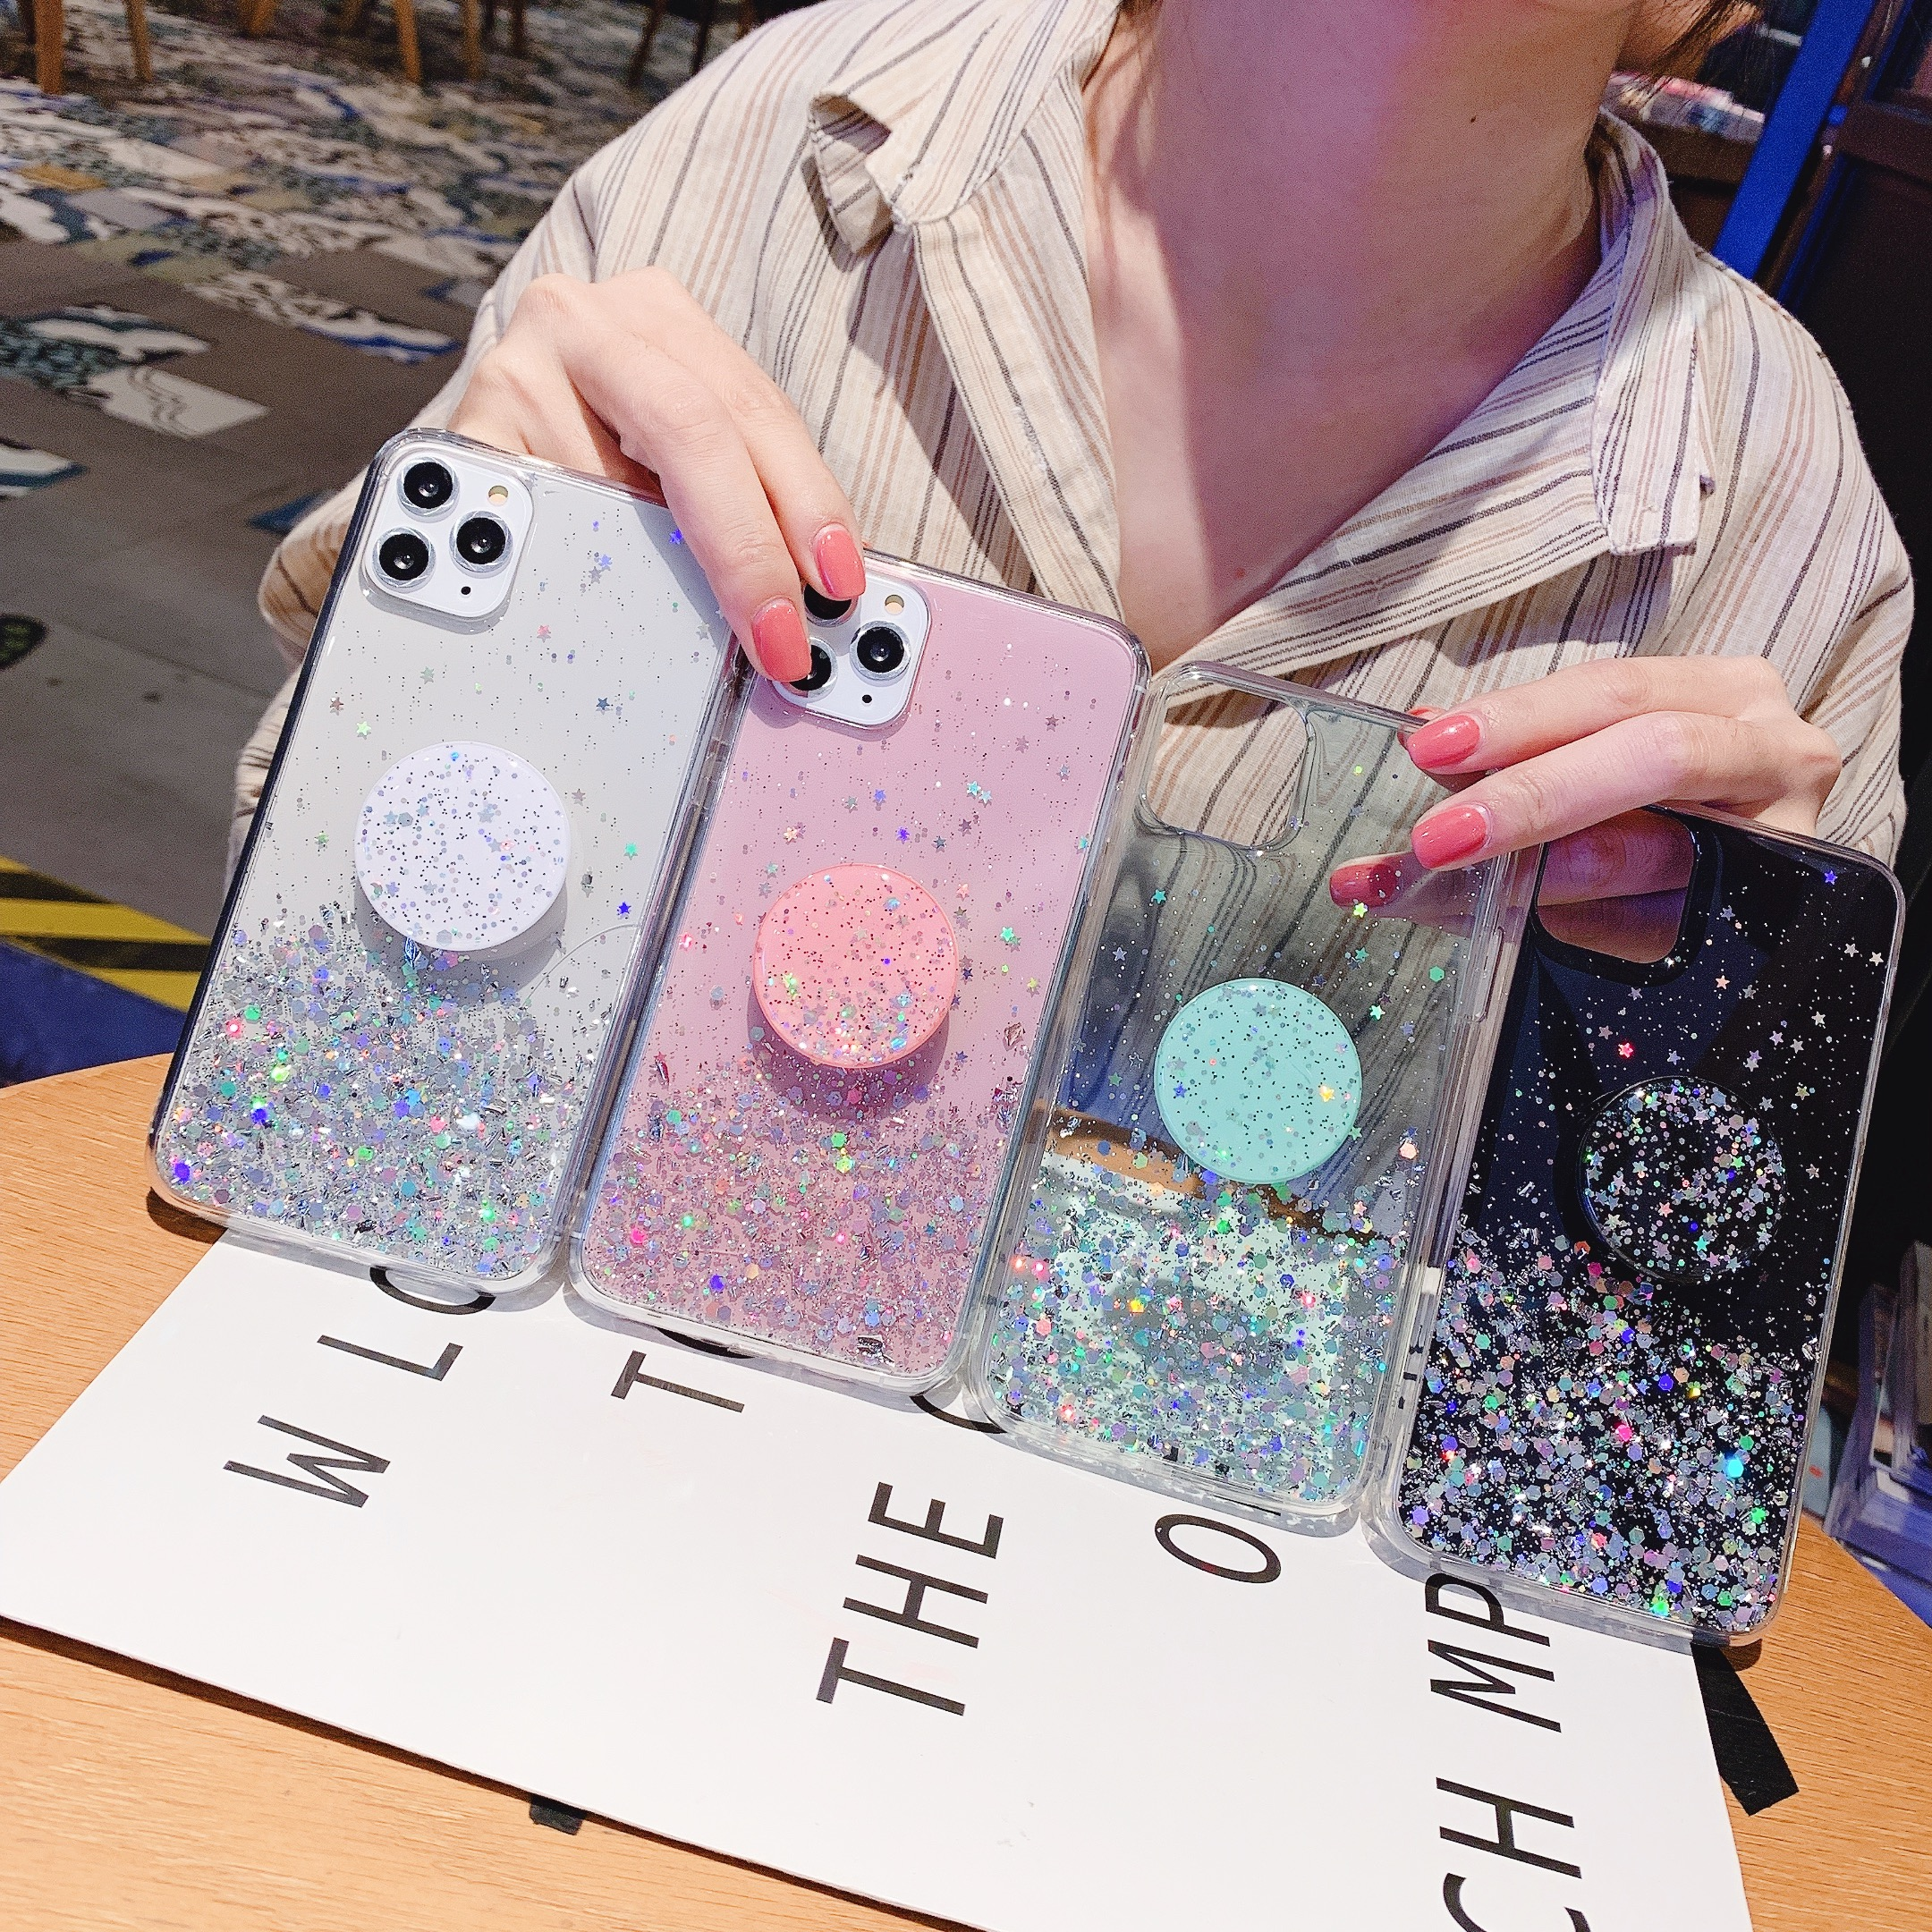 For <font><b>Samsung</b></font> Note10 pro note8 note9 Blingbling Glitter Stand Holder <font><b>Phone</b></font> <font><b>case</b></font> TPU Clear DIY <font><b>Cute</b></font> Bling Sequins S8 S9 Coque Funds image